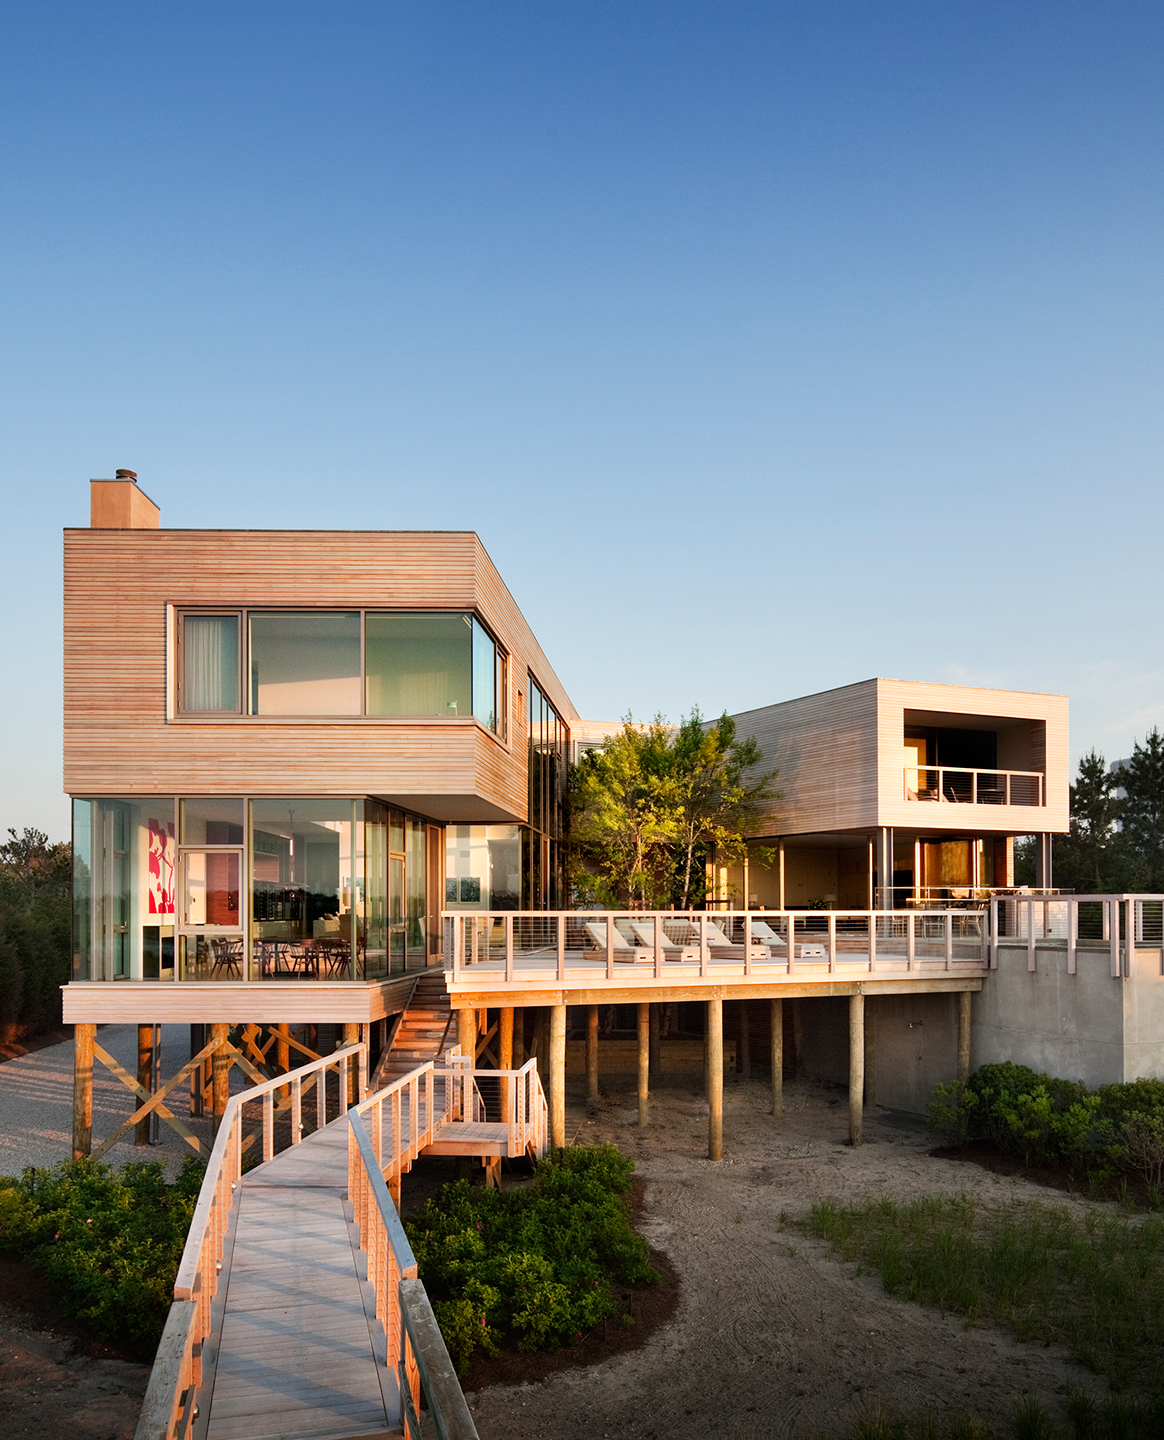 Good A Luxurious Look At Some Of The Best Designed Homes In The Hamptons